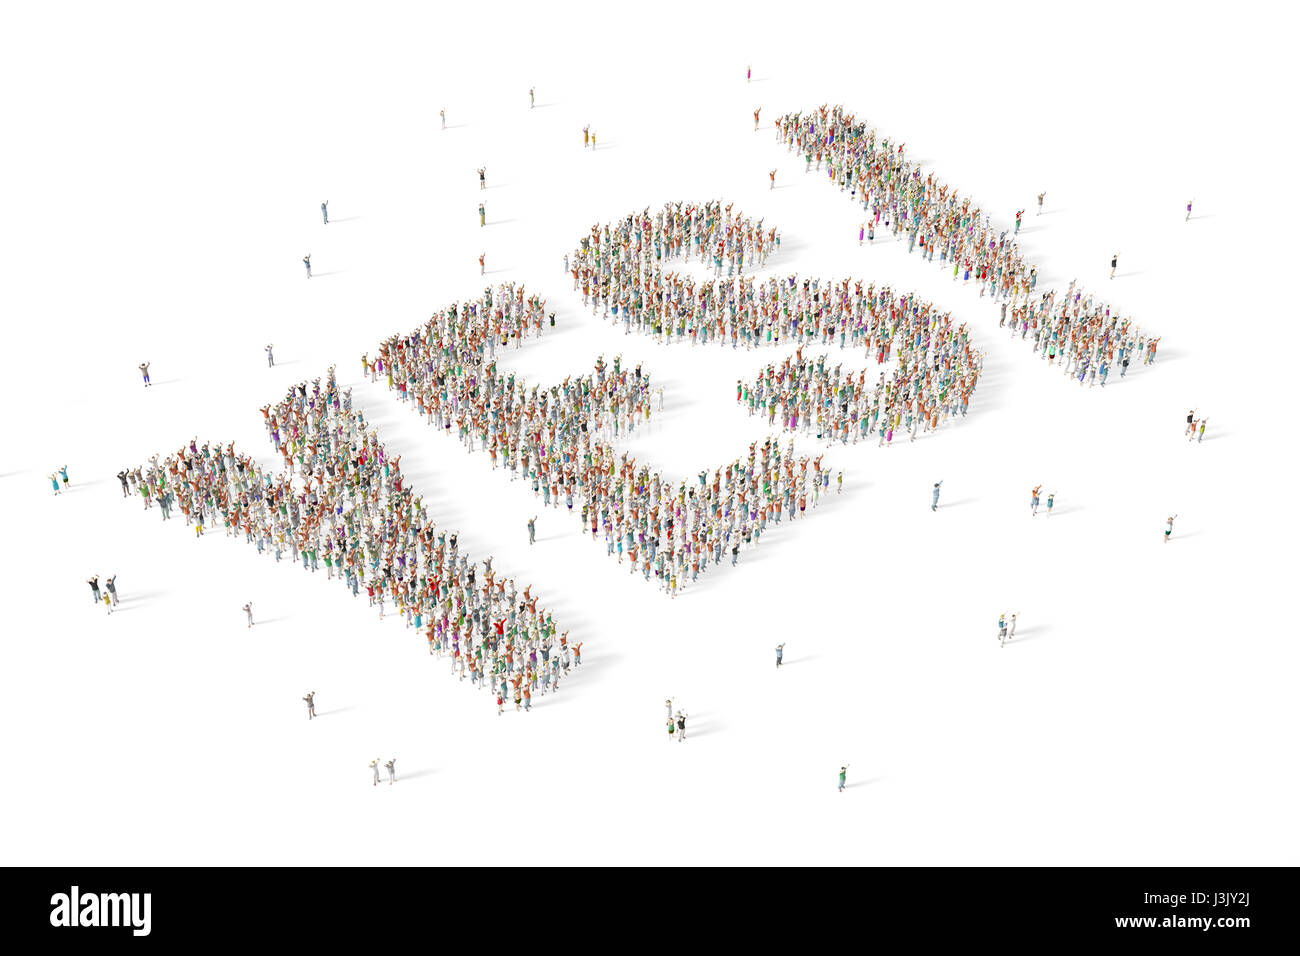 Large and diverse group of people gathered together in the shape of the word yes - Stock Image